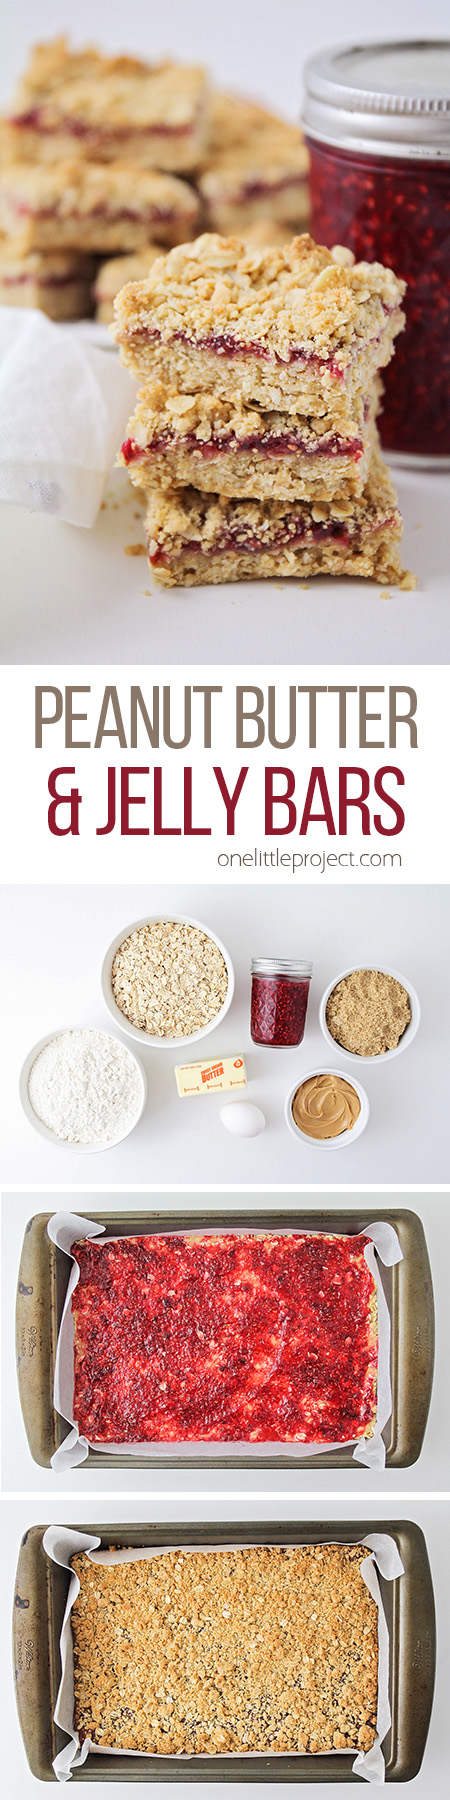 These crunchy and sweet peanut butter and jelly bars are the perfect after school snack! They're so easy to make, and totally delicious!